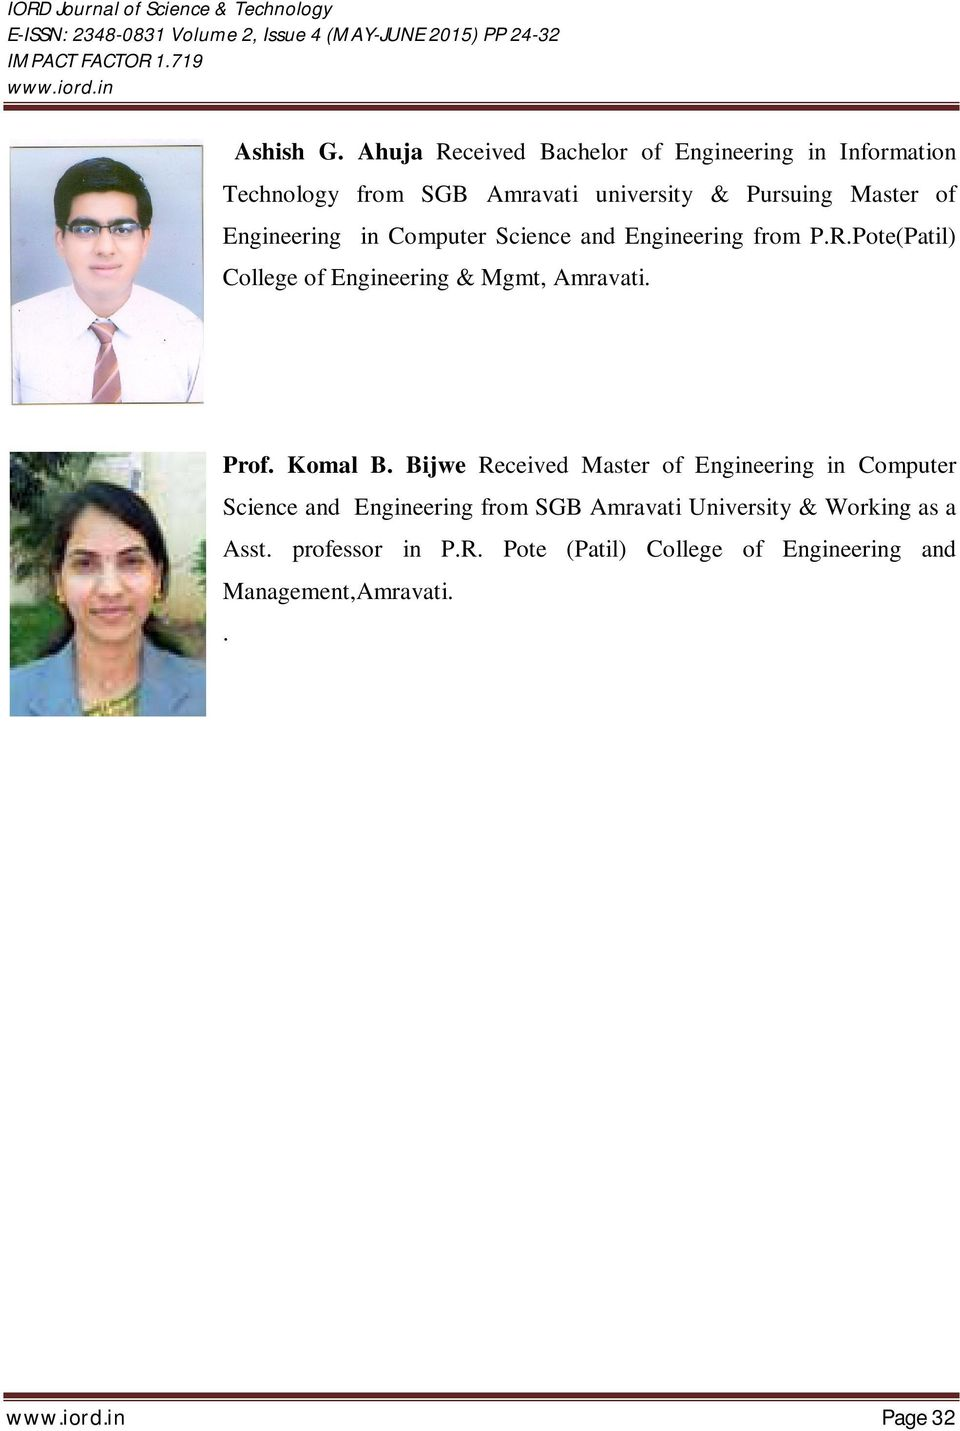 Engineering in Computer Science and Engineering from P.R.Pote(Patil) College of Engineering & Mgmt, Amravati. Prof.